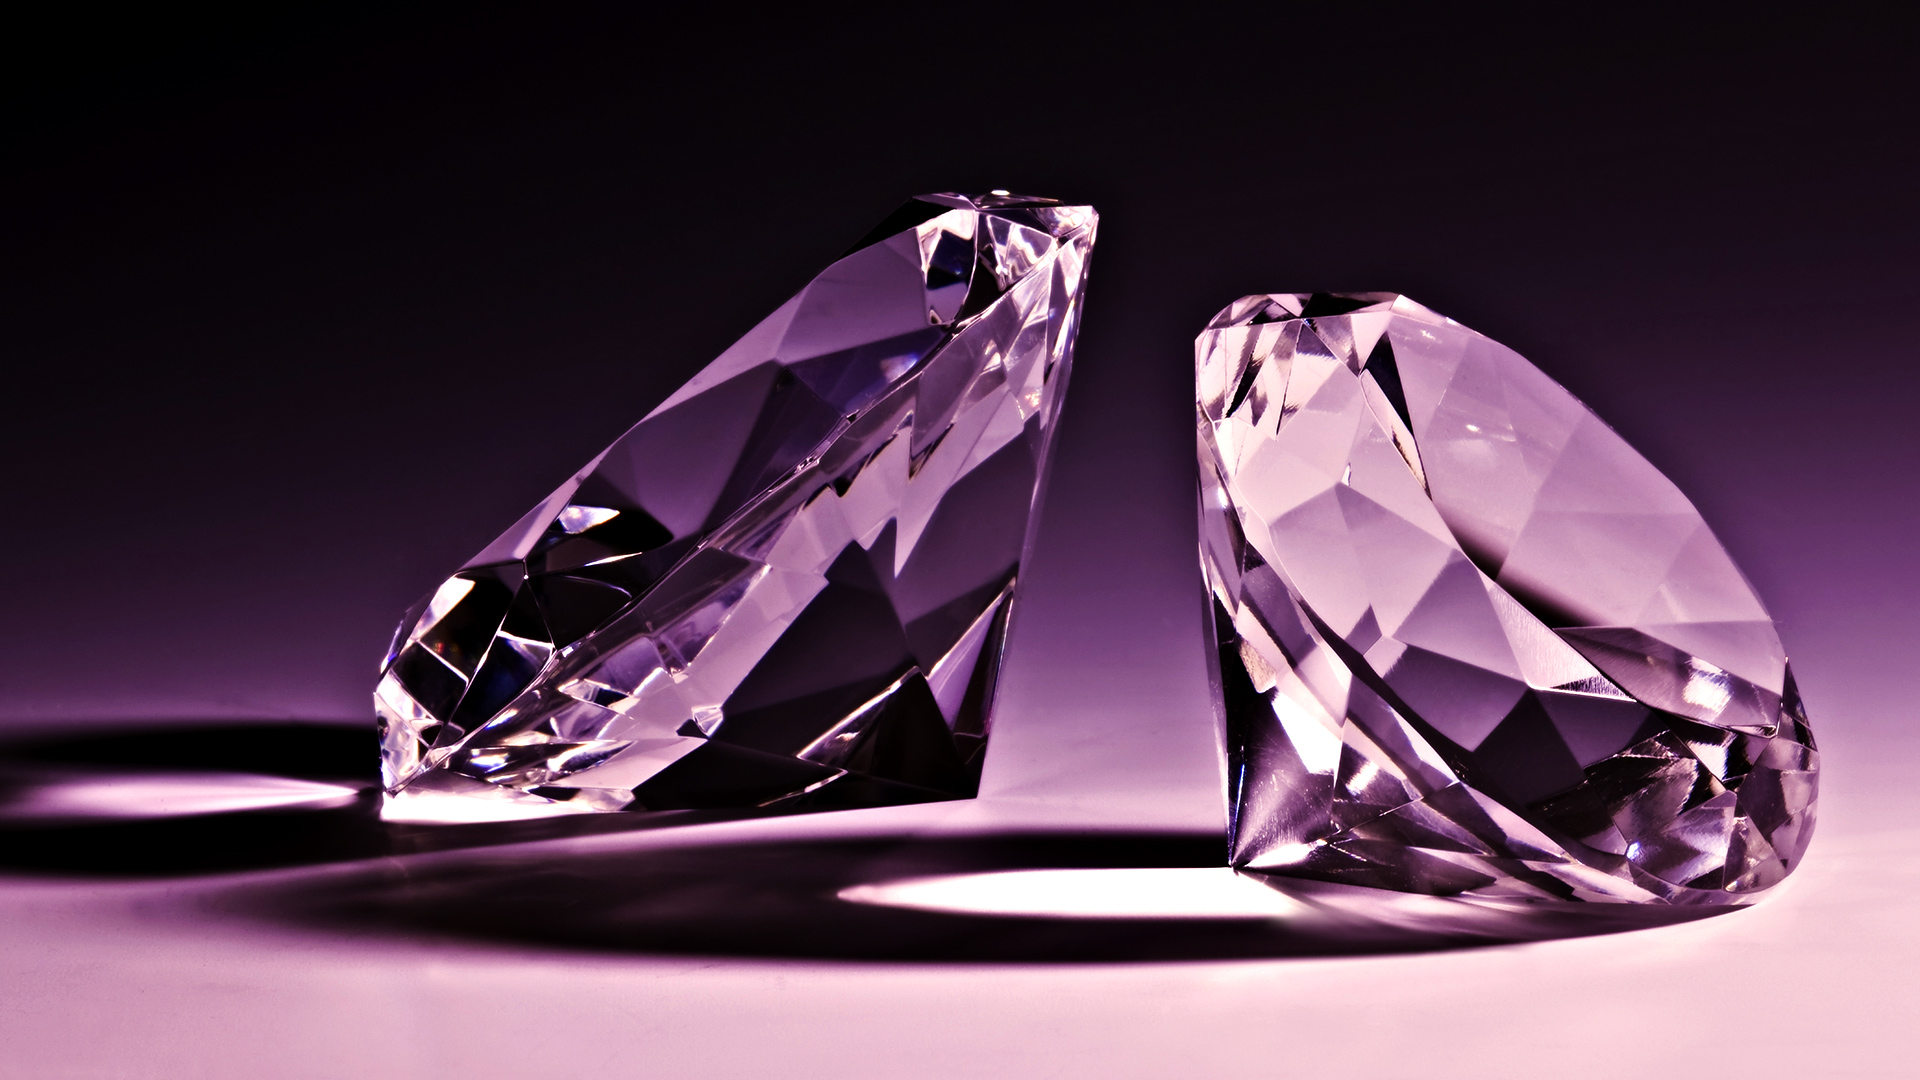 Voilet Crystal Diamond Images